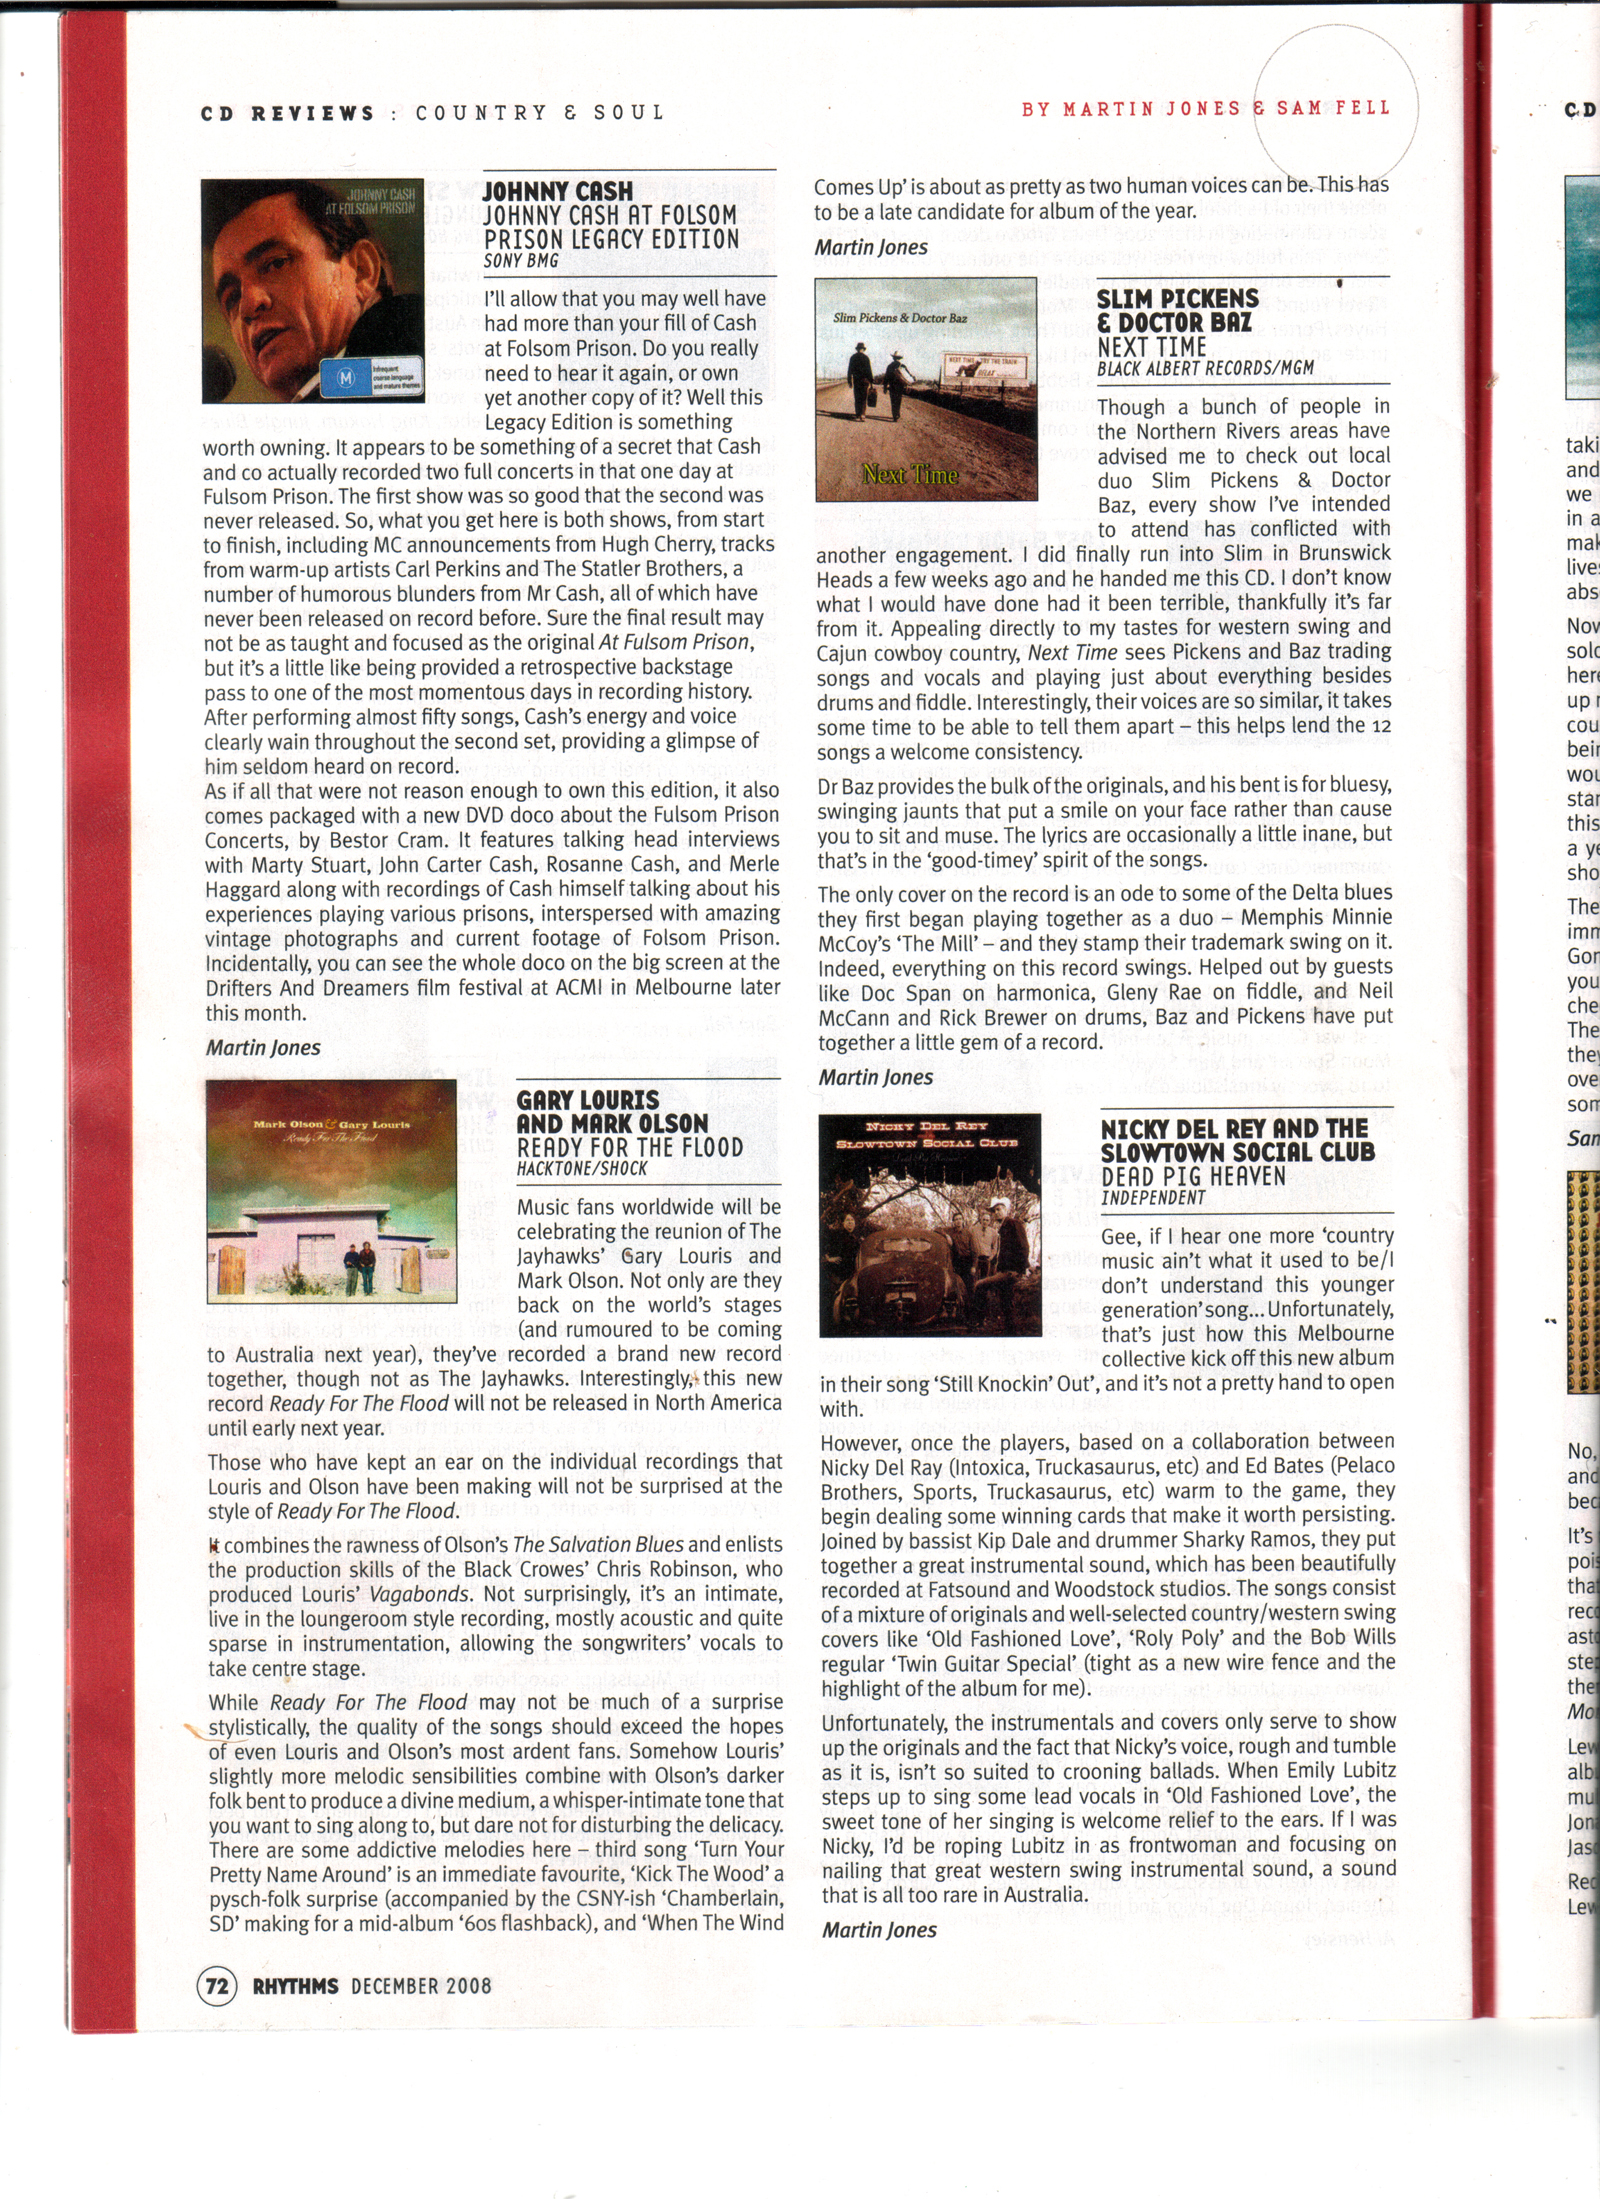 Review of Next Time CD in Rhythms Magazine